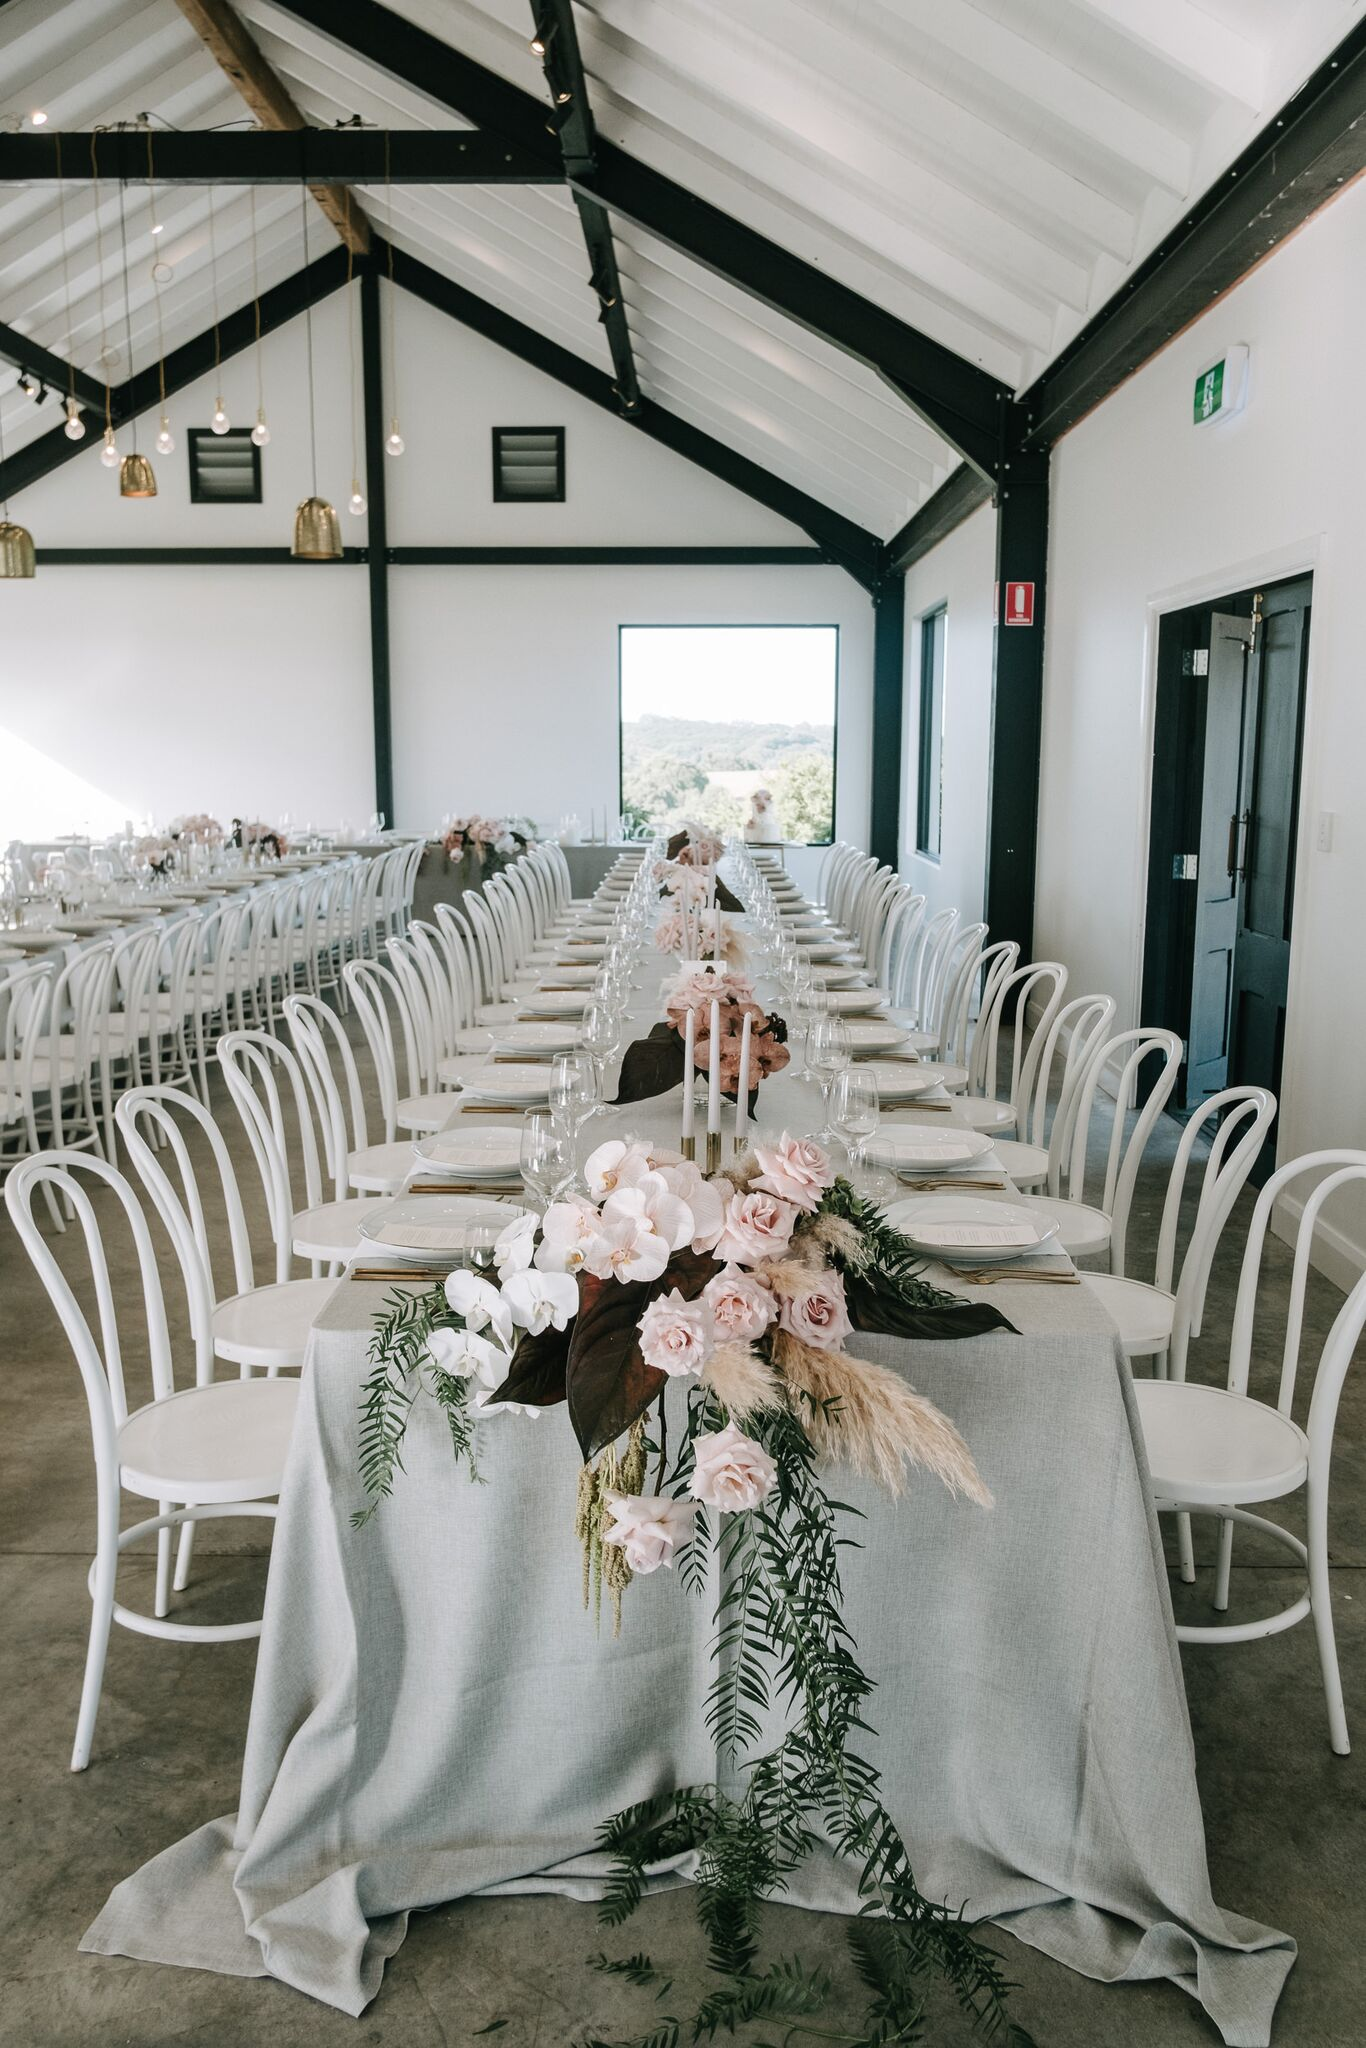 Wedding Furniture Hire Checklist - Image via Lucas and Co Photography Styled by The Events Lounge